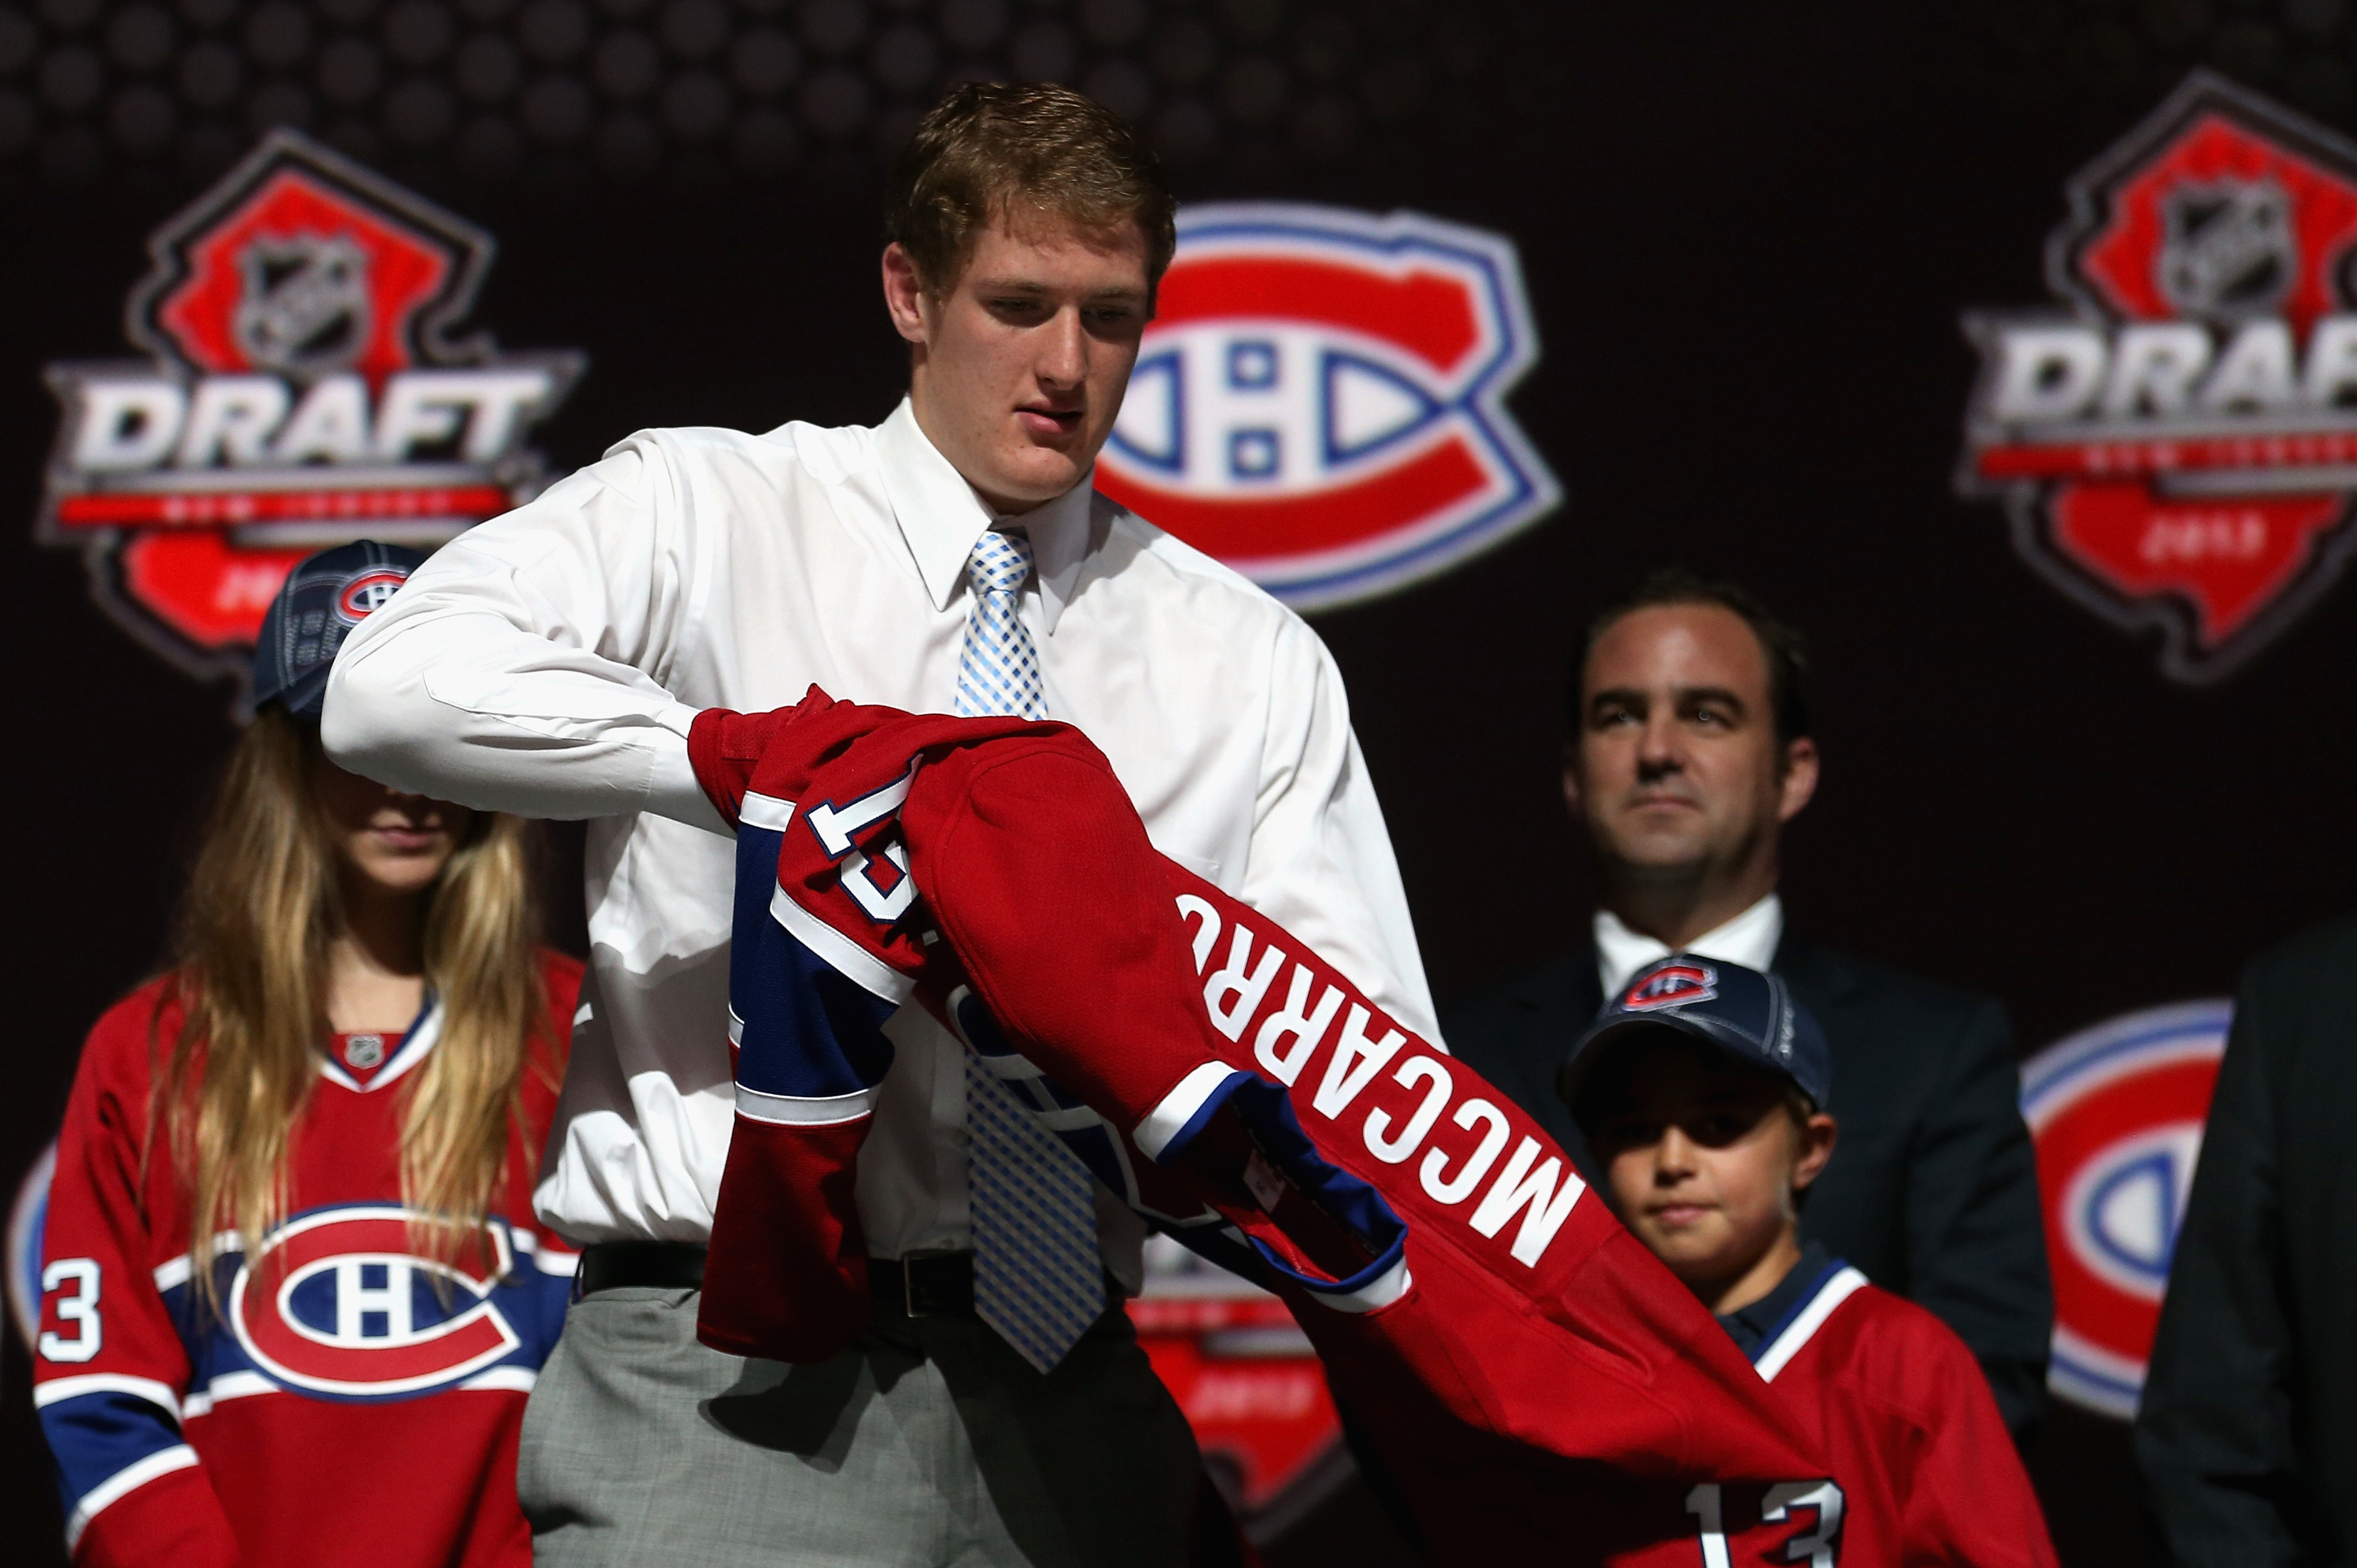 Montreal draft pick Michael McCarron, seen here putting on a Canadiens jersey at the 2013 NHL Draft in Newark, appears destined to wear a London Knights sweater in 2013.